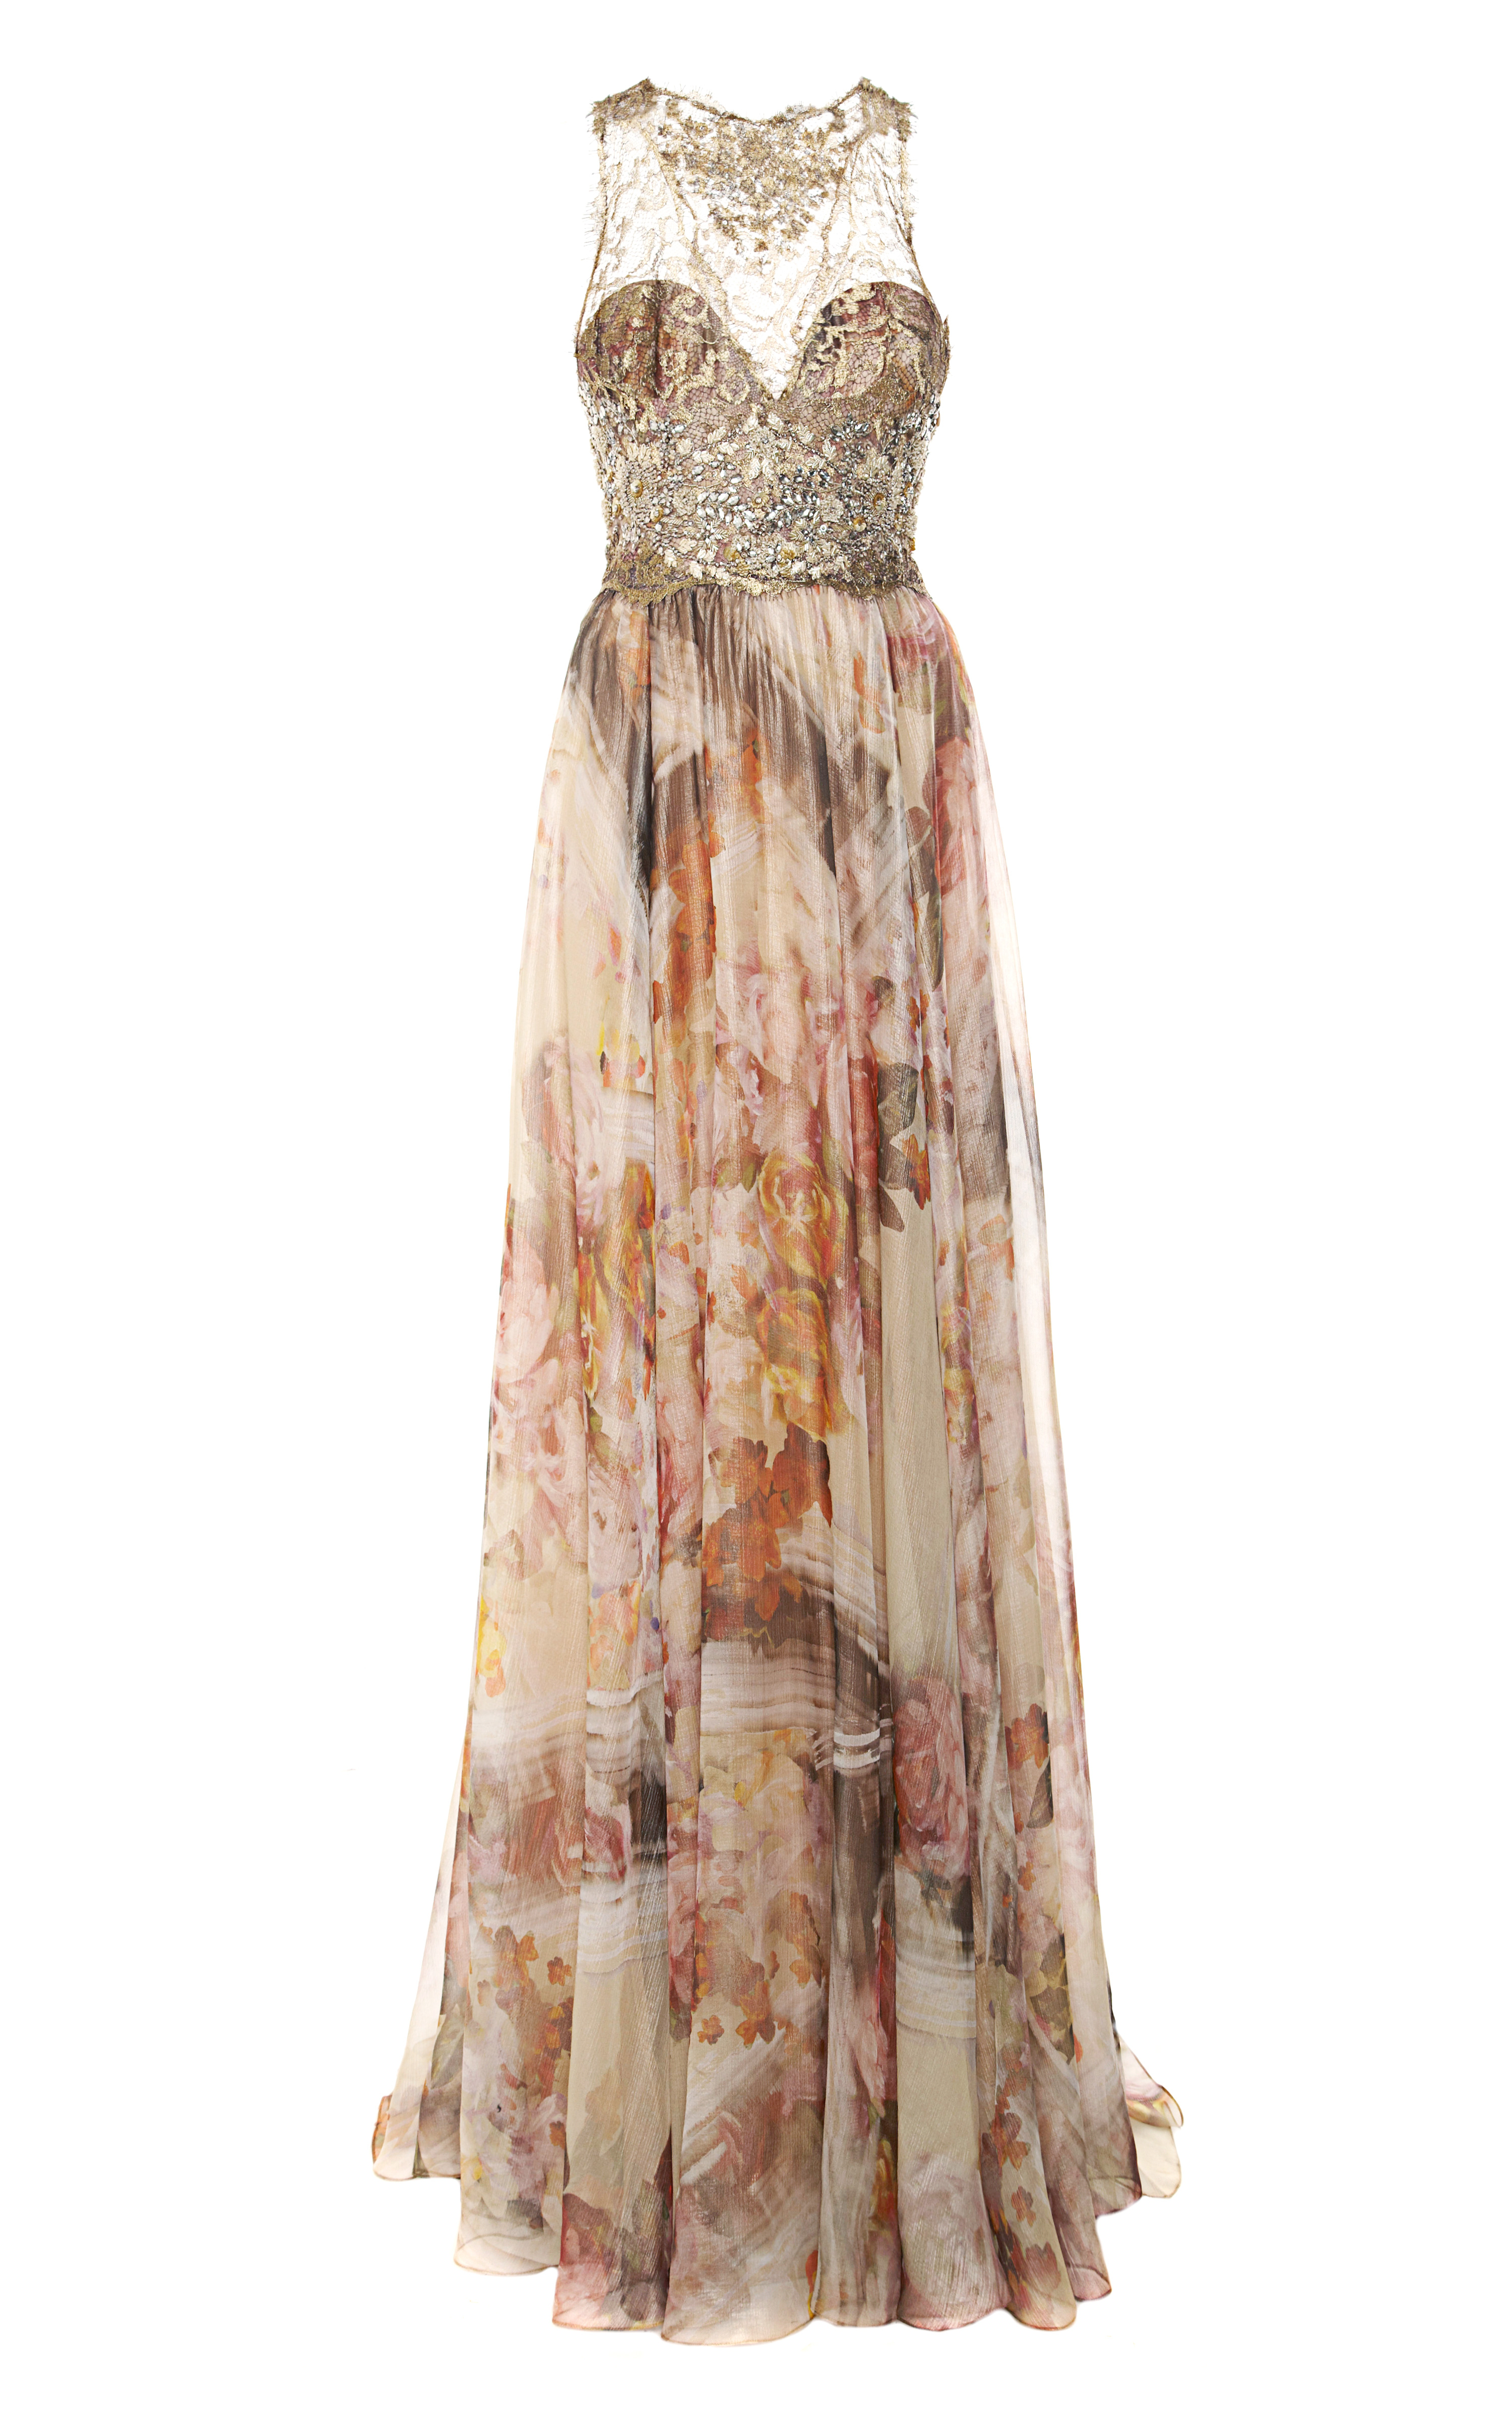 Lyst - Marchesa Gold Foil Printed Floral Chiffon Gown in Pink